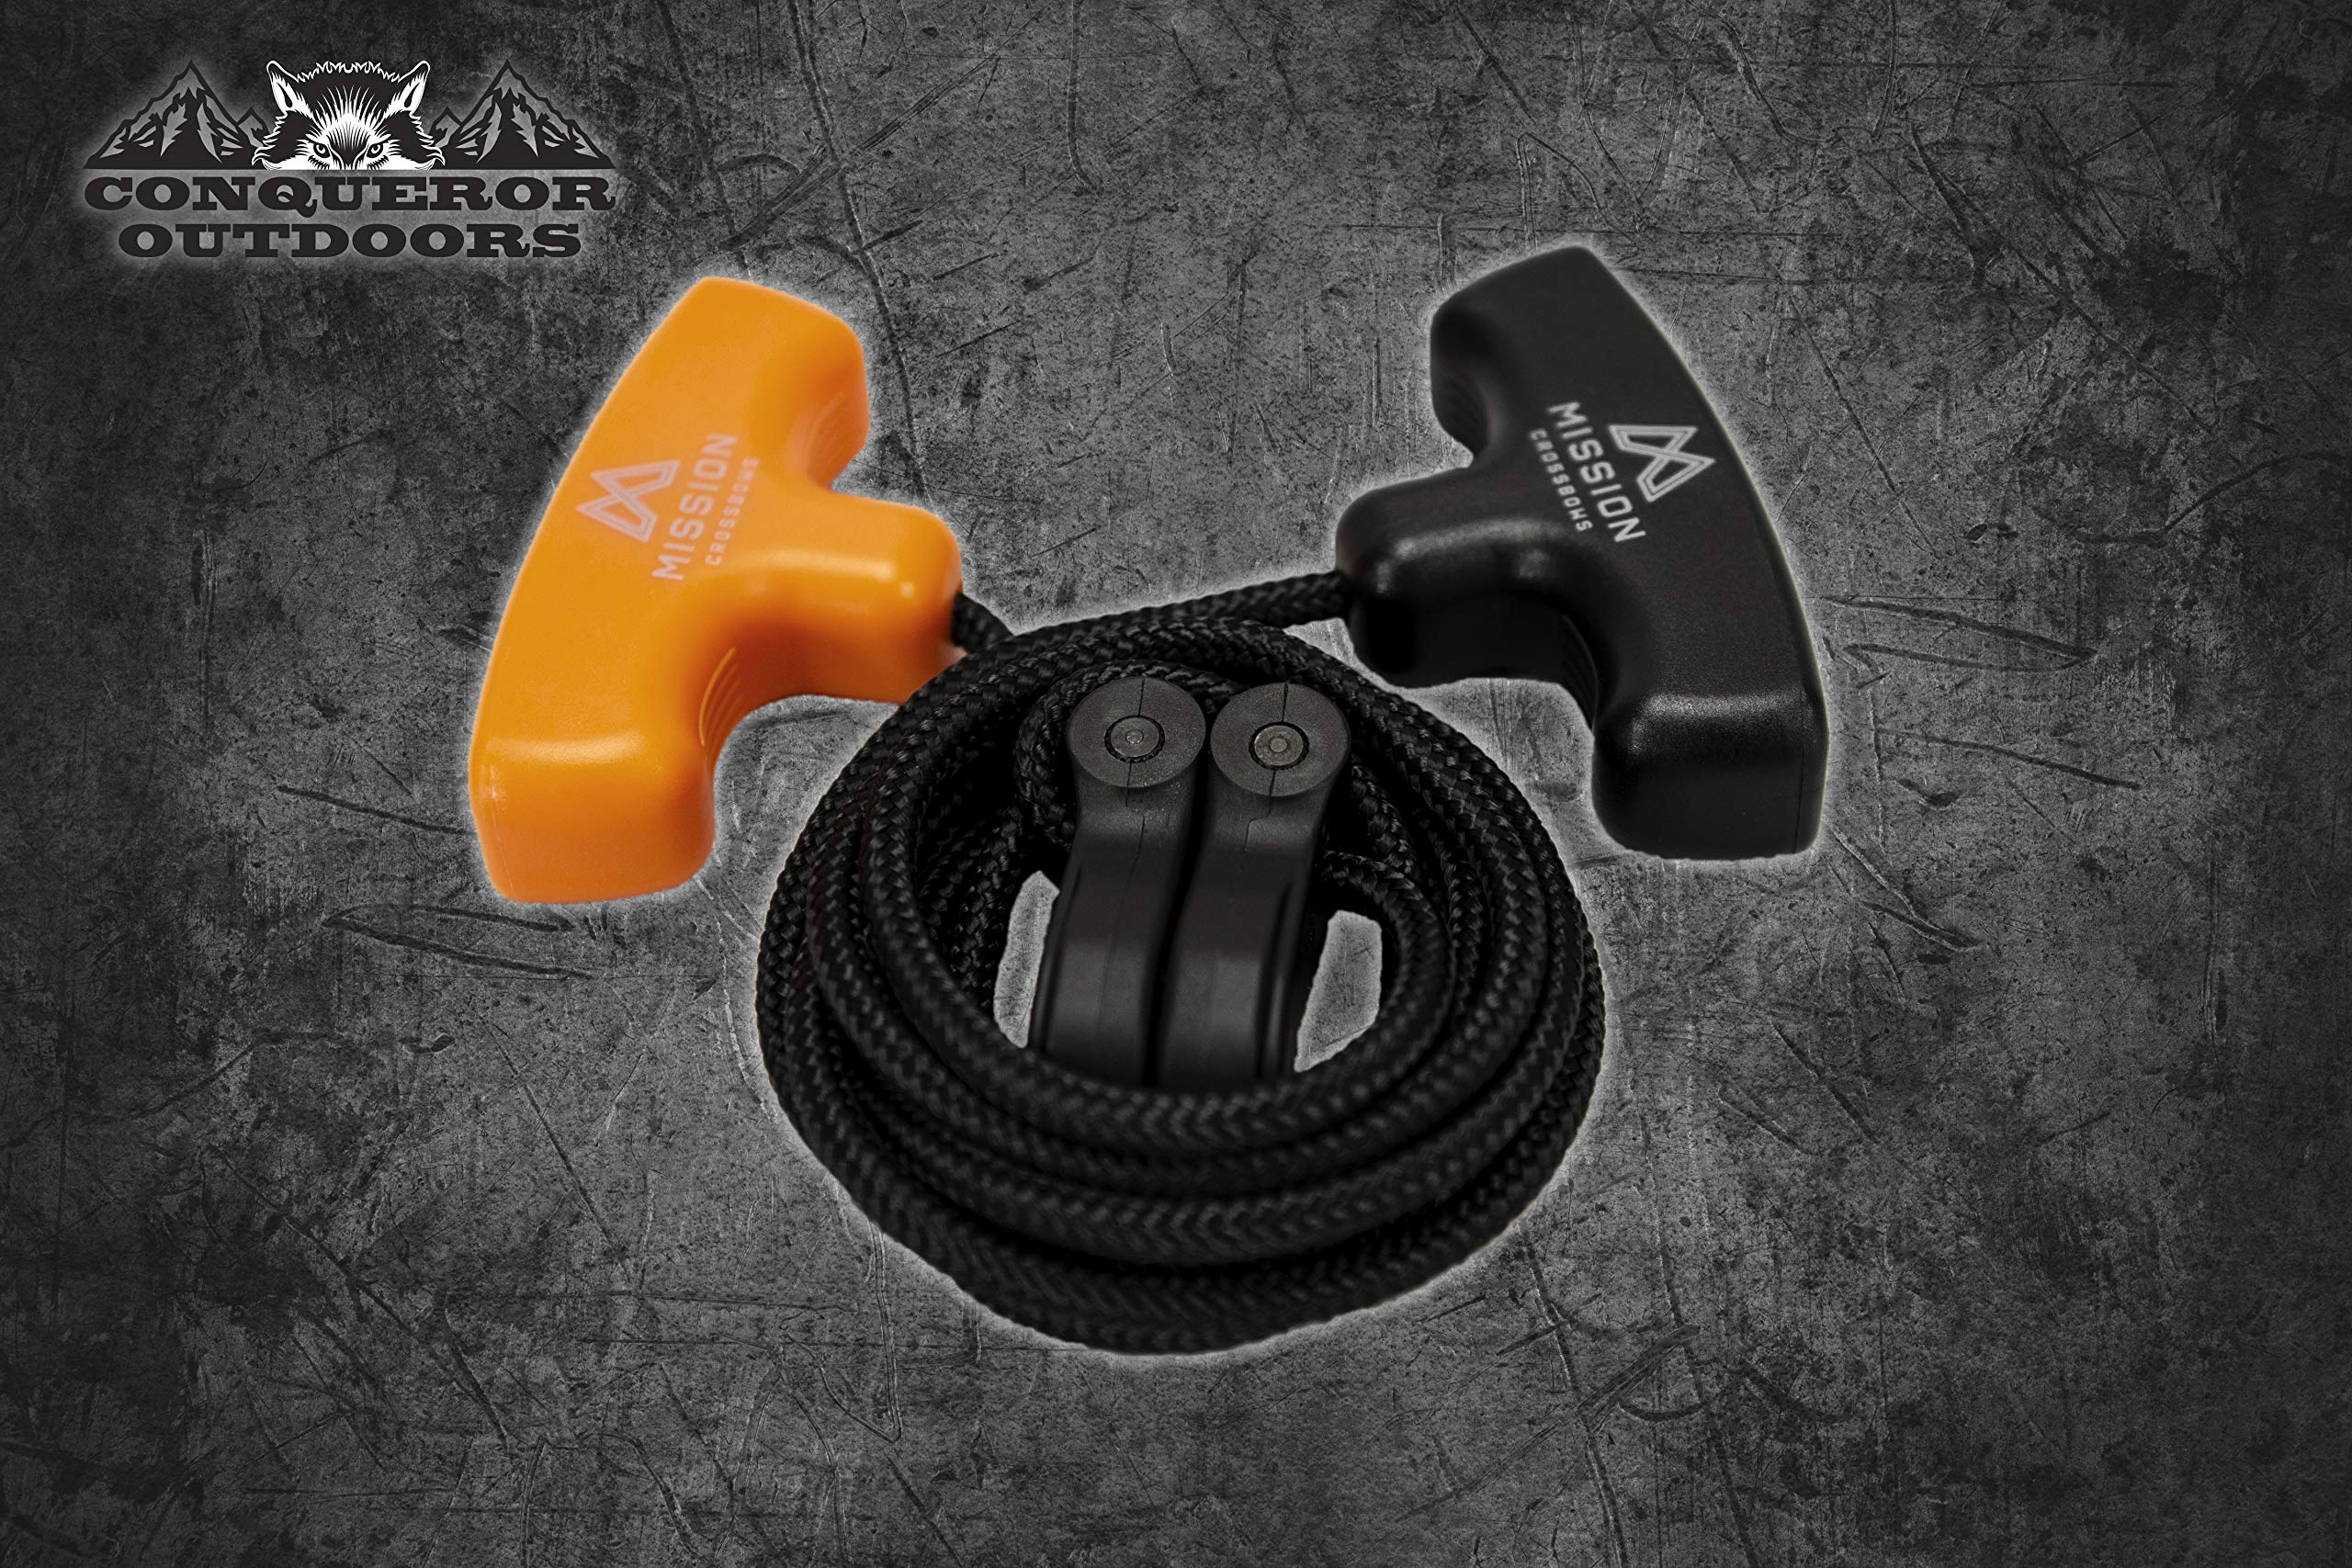 MISSION COCKING AID (ROPE) | 80676 | CLASSIC CROSSBOW PORTABLE COCKING TOOL | SHOCK ABSORBENT | ABRASION RESISTANT | SMOOTHLY BRAIDED | SAVE 50% EFFORT | T-HANDLES | UNIVERSAL USE | QUICK LOAD FOR ALL by MISSION CROSSBOWS